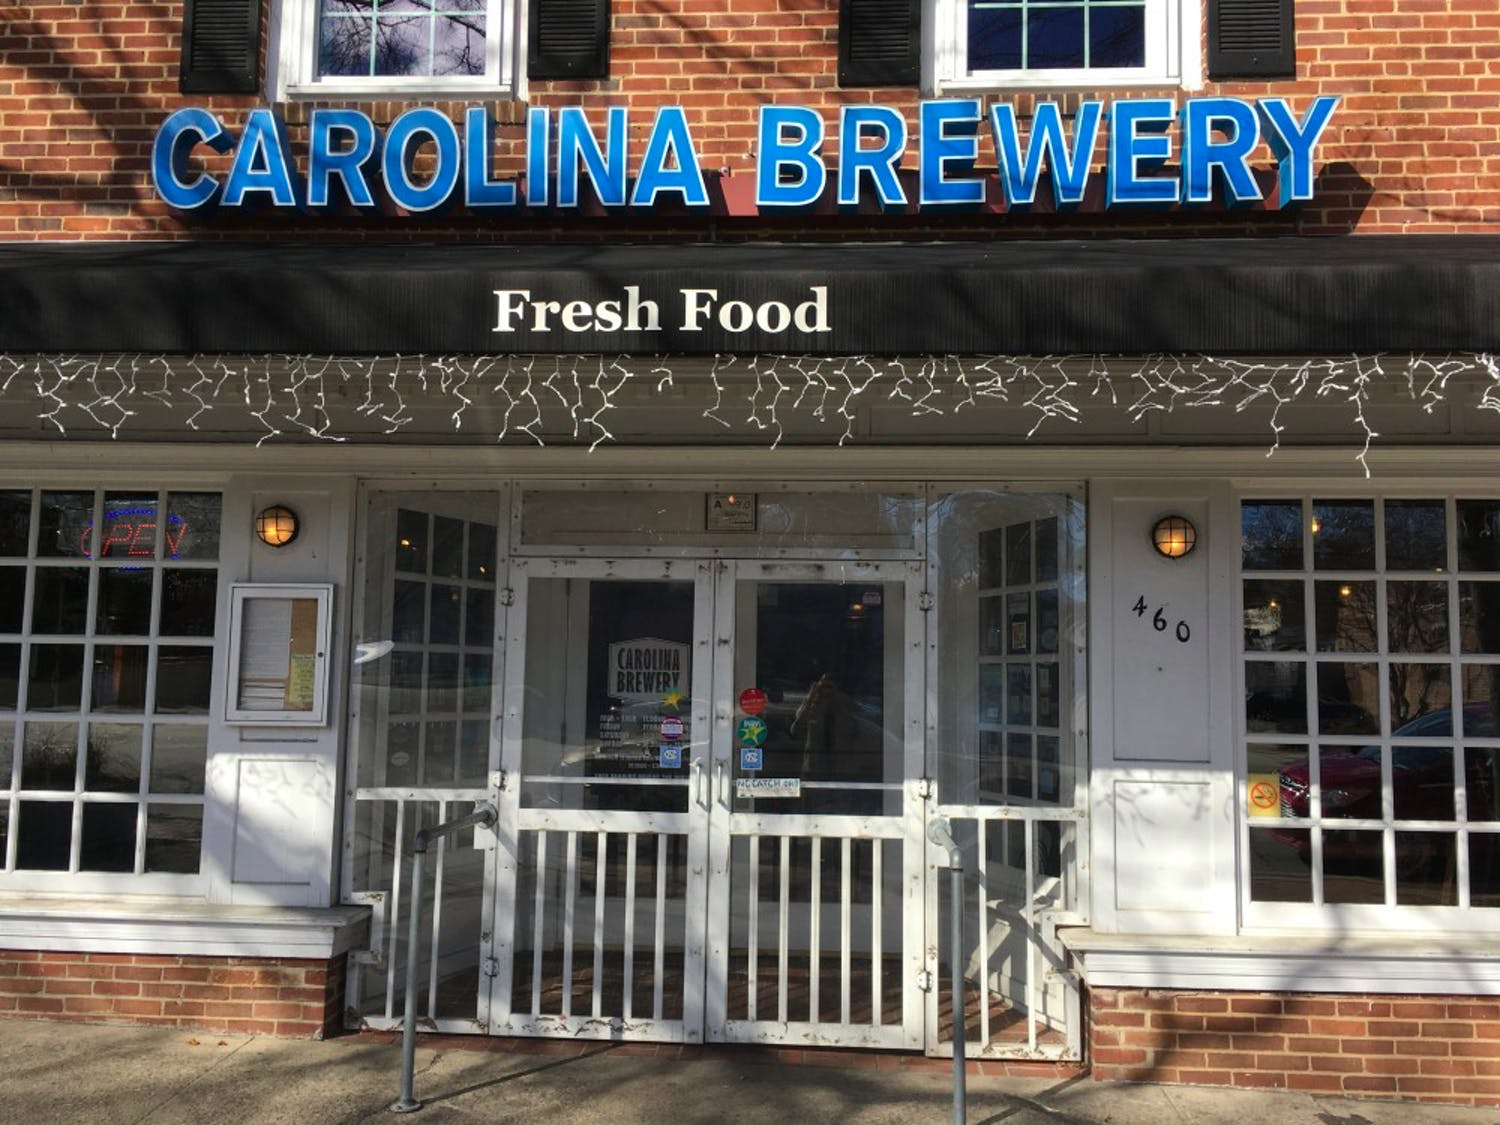 Carolina Brewery store front courtesy of the DTH